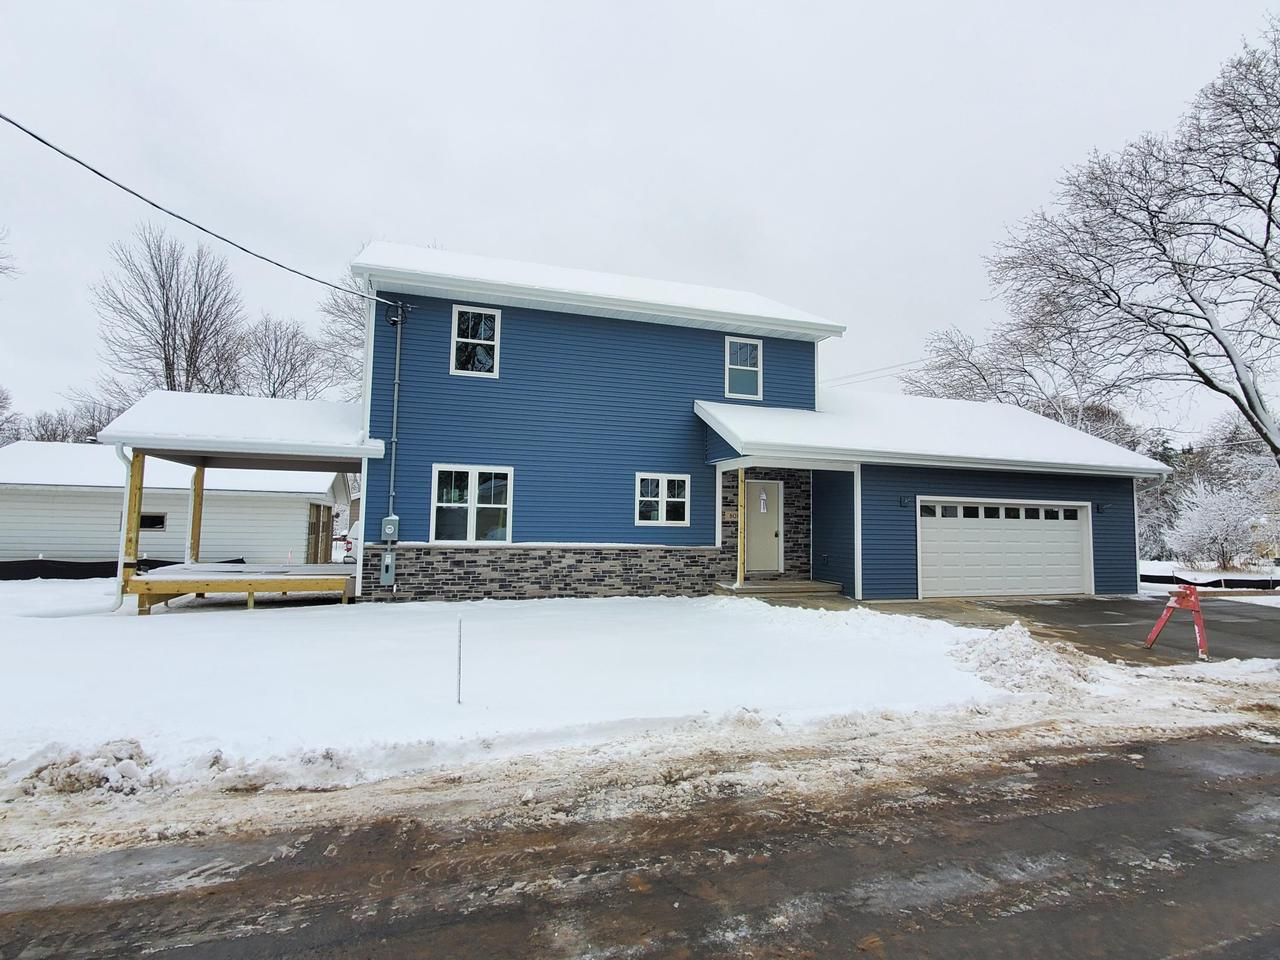 NOT YOUR TYPICAL ''COOKIE CUTTER'' STYLE OR MASS PRODUCED HOME! THIS CUSTOM DESIGNED HOME OFFERS 2X6 WALLS, OVER 2400 SQ FT OF LIVING SPACE,4-5 BDRMS, 3 1/2 BATHS,CHERRY AND MAPLE CABINETS,WHITE TRIM PCKG,OVERSIZED GARAGE, COVERED DECK,MFLR LAUNDRY, 9' CEILINGS,10 ' HIGH GARAGE,ALL SS KTCHN APPLIANCES+MORE! A RARE OPPORTUNITY TO OWN THE NEWEST HOME IN ONE OF WATERTOWNS MOST NOTABLE NEIGHBORHOODS AND NO SUBDIVISION RESTICTIONS...JUST STEPS FROM THE ROCK RIVER,THE AQUATIC CENTER,CHAMBERLAND,SOFTBALL AND BASEBALL DIAMONDS,VOLLEYBALL COURTS,MIDDLE SCHOOL,DOUGLAS ELEMENTARY,TENNIS COURTS AND ENJOY SOME OF THE BEST PARKING FOR WATERTOWNS FAMOUS RIVERFEST + FIREWORKS TOO! IT'S ALSO SITUATED ON NEARLY 1/3 ACRE ON A DEAD END ST! CALL TO TOUR AND YOU CAN PLAY A ROLE IN COLOR CHOICES YET TOO!